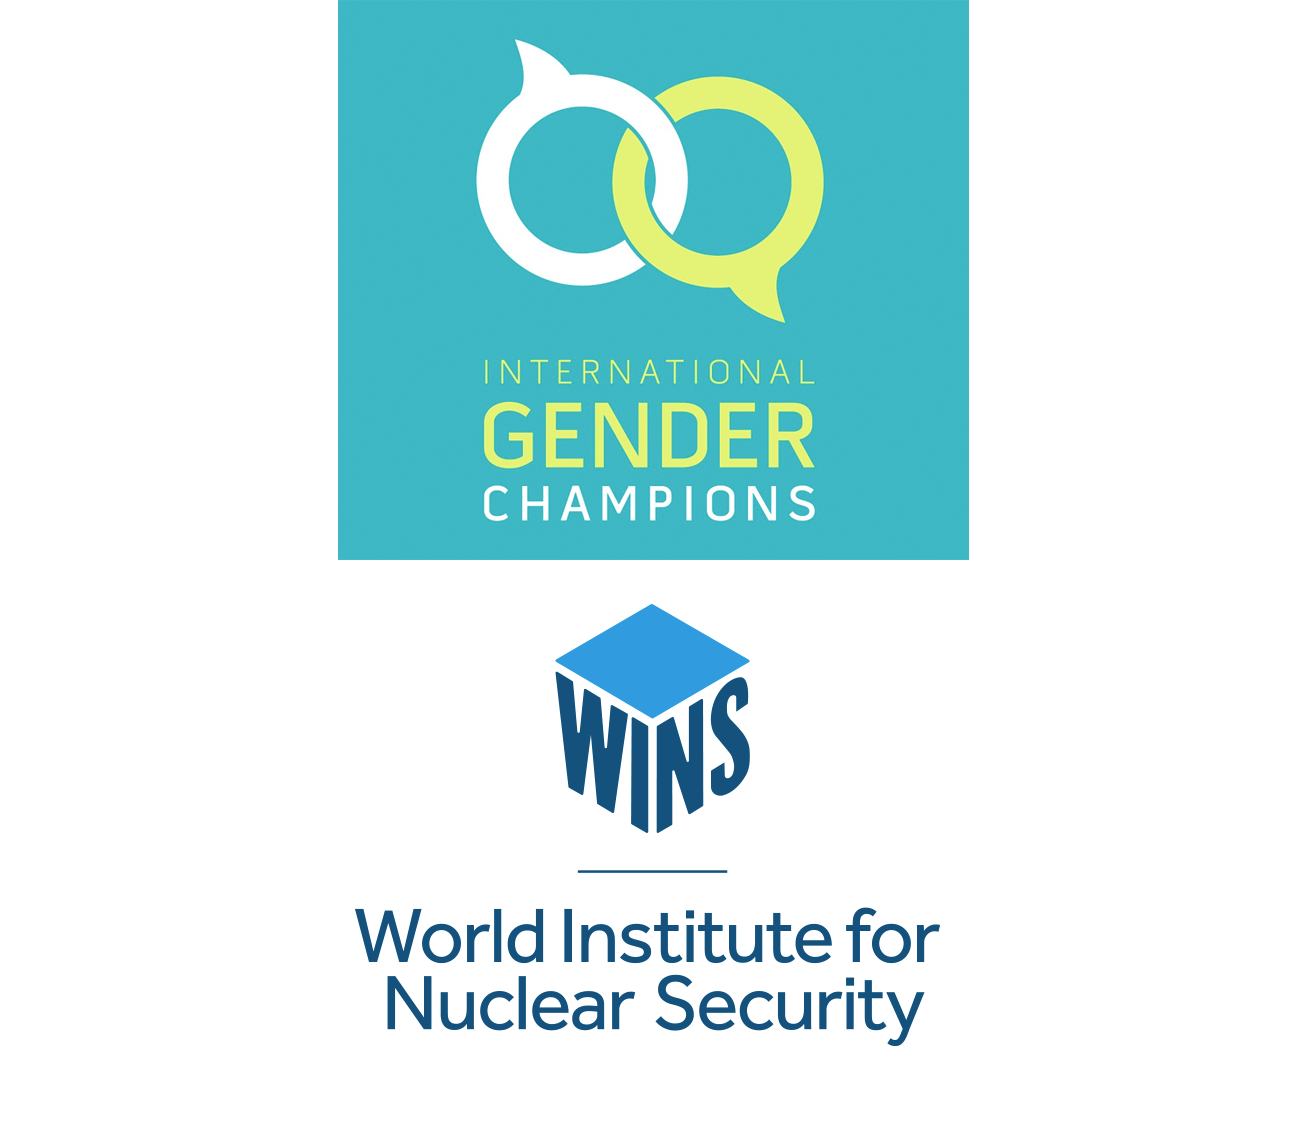 Norway Awards Funding for WINS' Gender Equality in Nuclear Security Programme